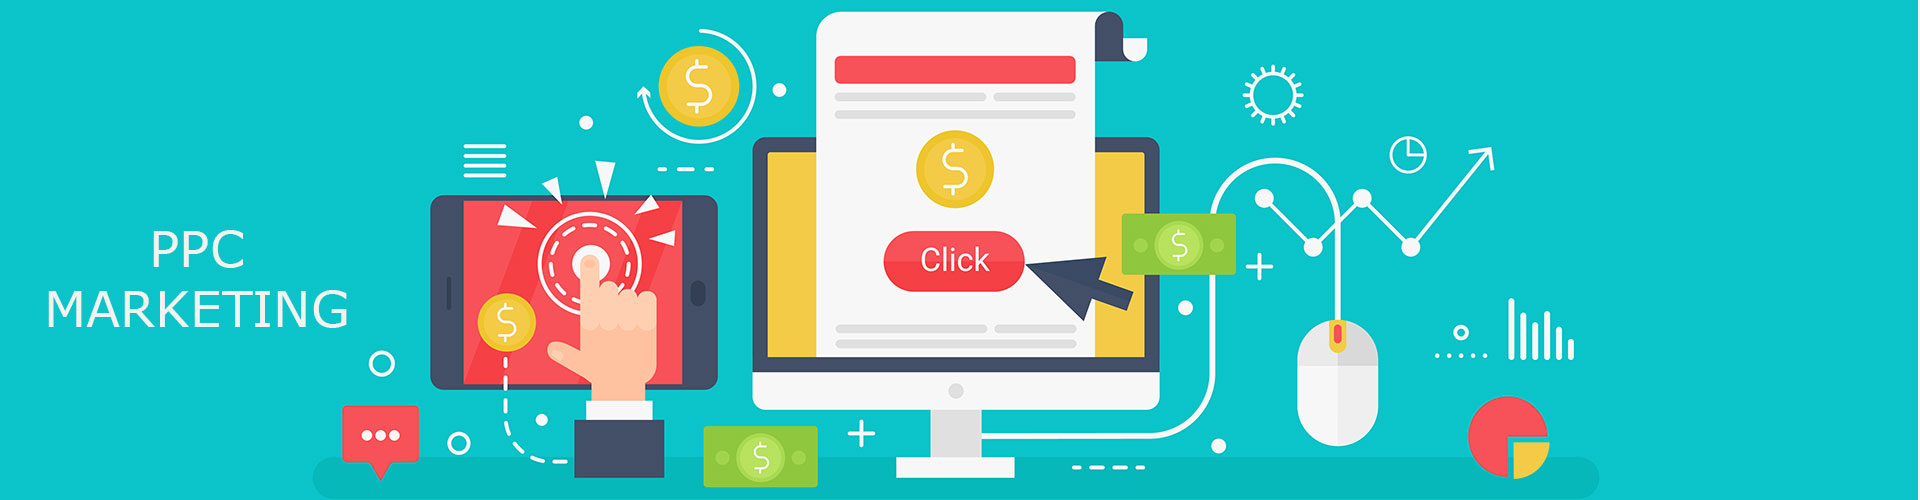 Google Ads PPC Marketing and Management